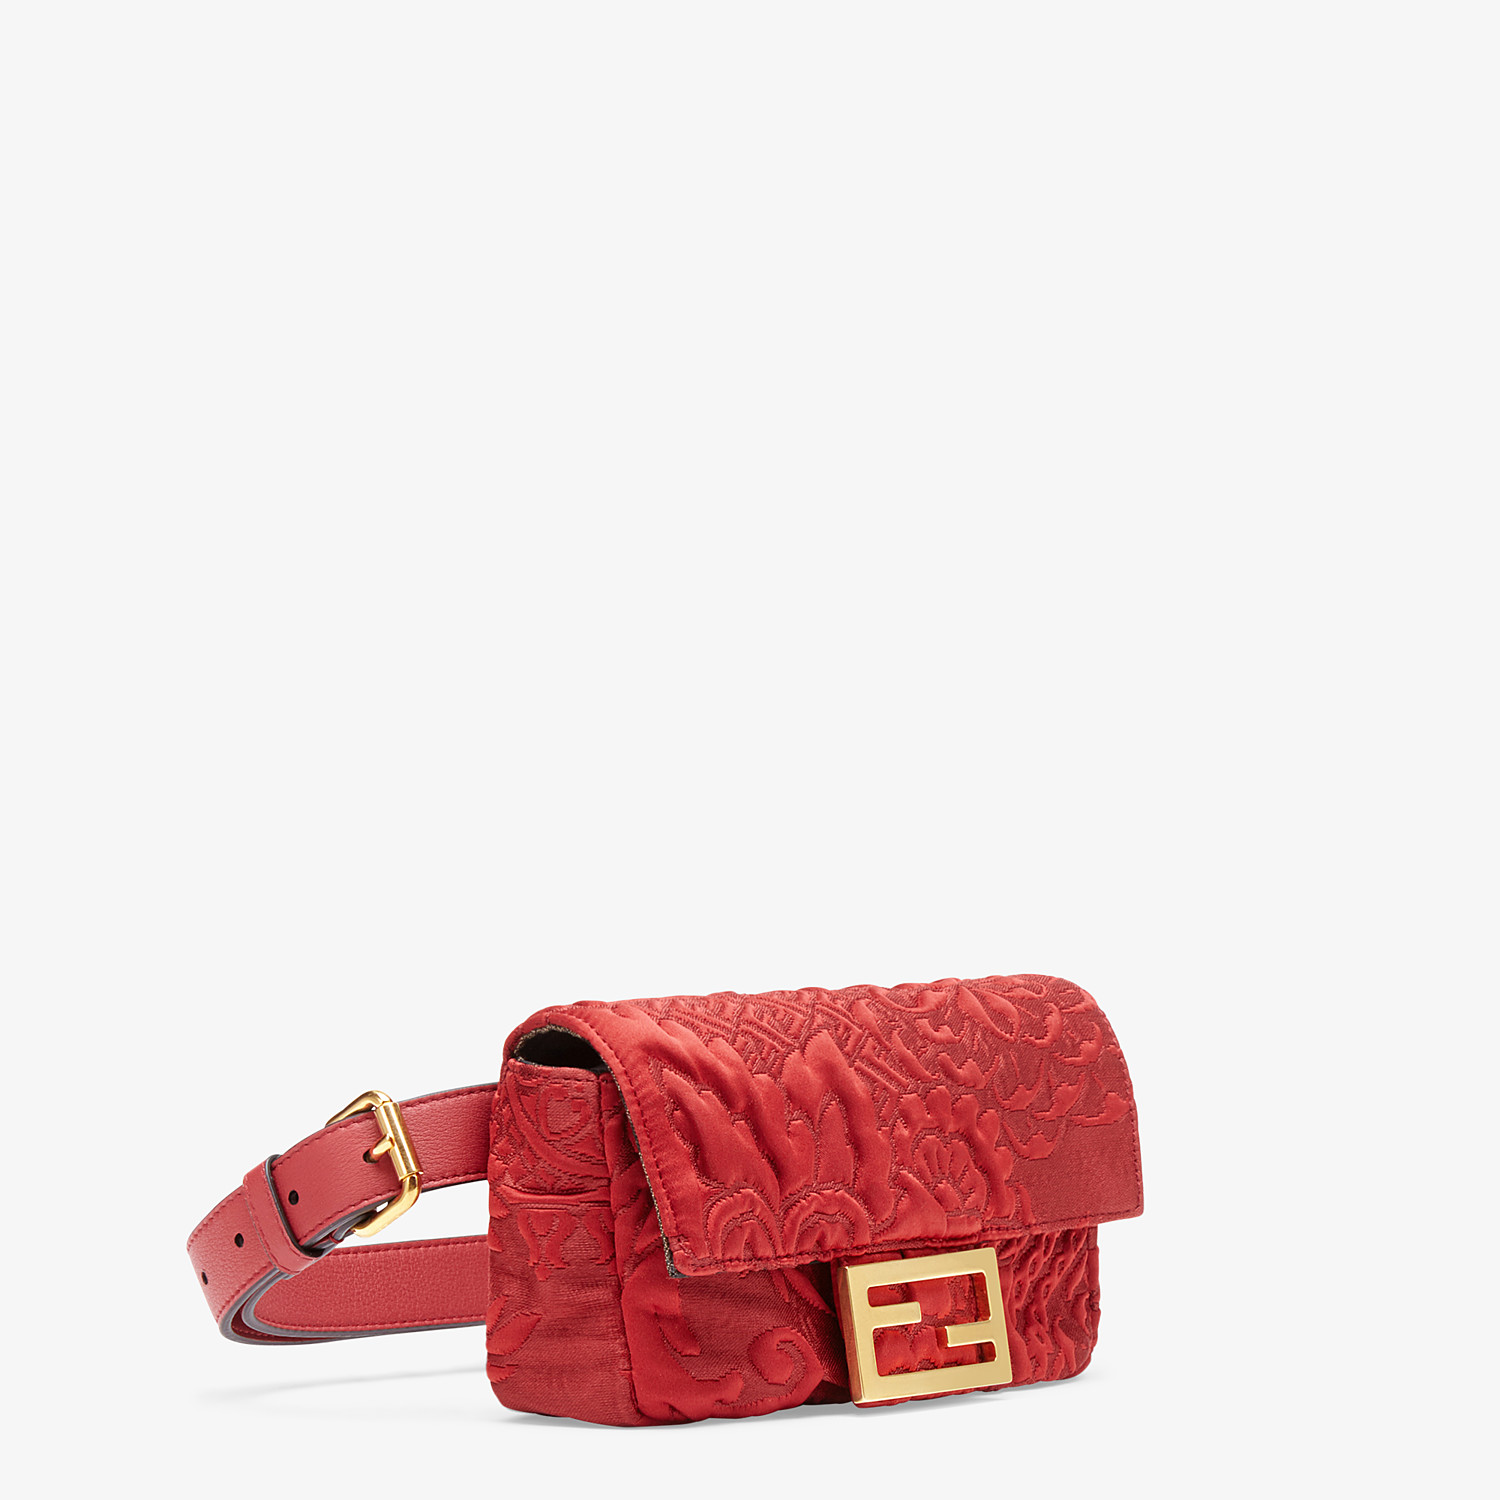 FENDI BELT BAG - Red fabric minibag - view 3 detail